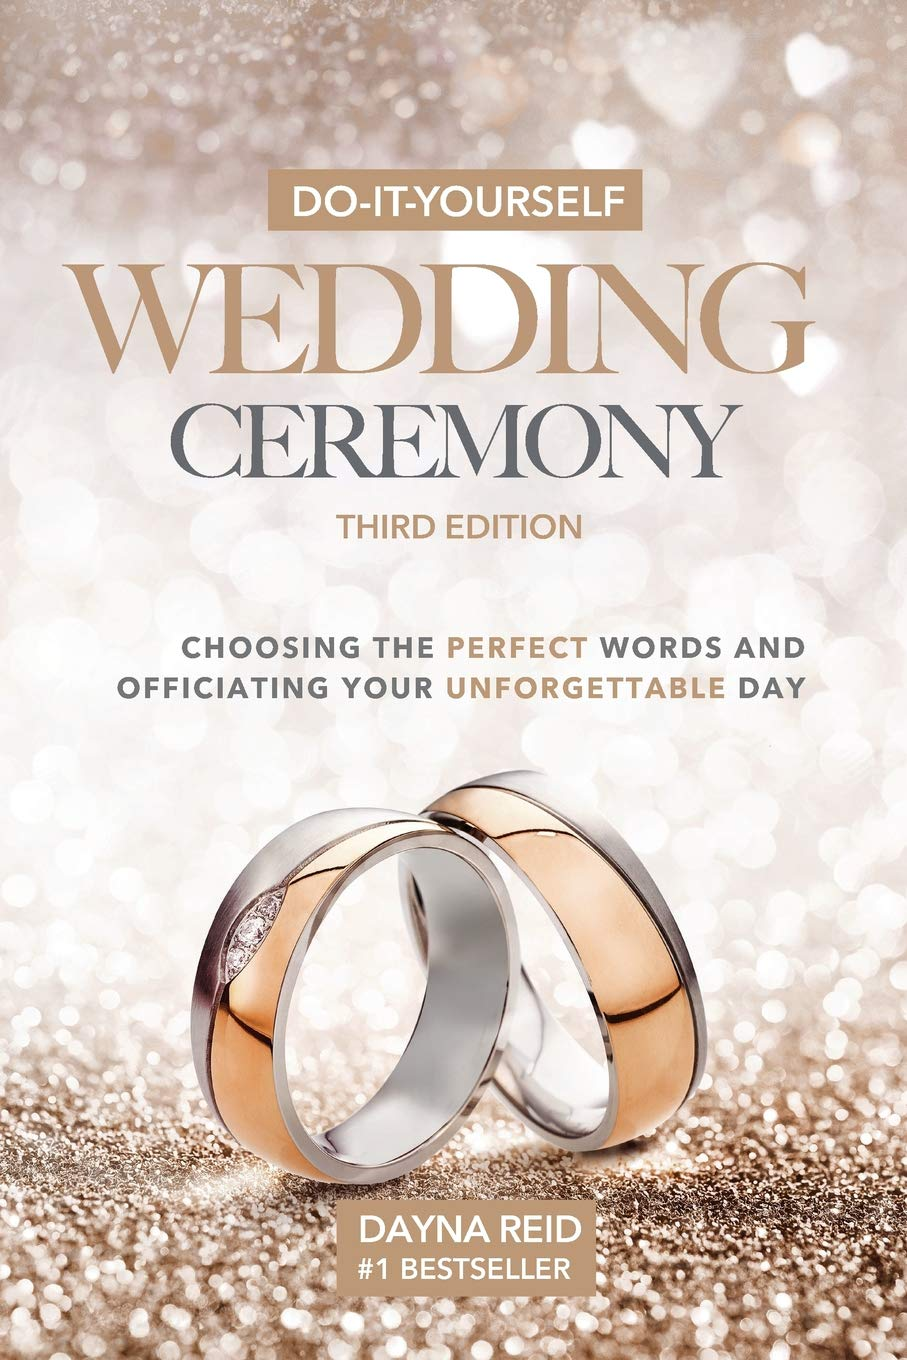 Do-It-Yourself Wedding Ceremony Choosing the Perfect Words and Officiating Your Unforgettable Day Third Edition Paperback December 5, 2018